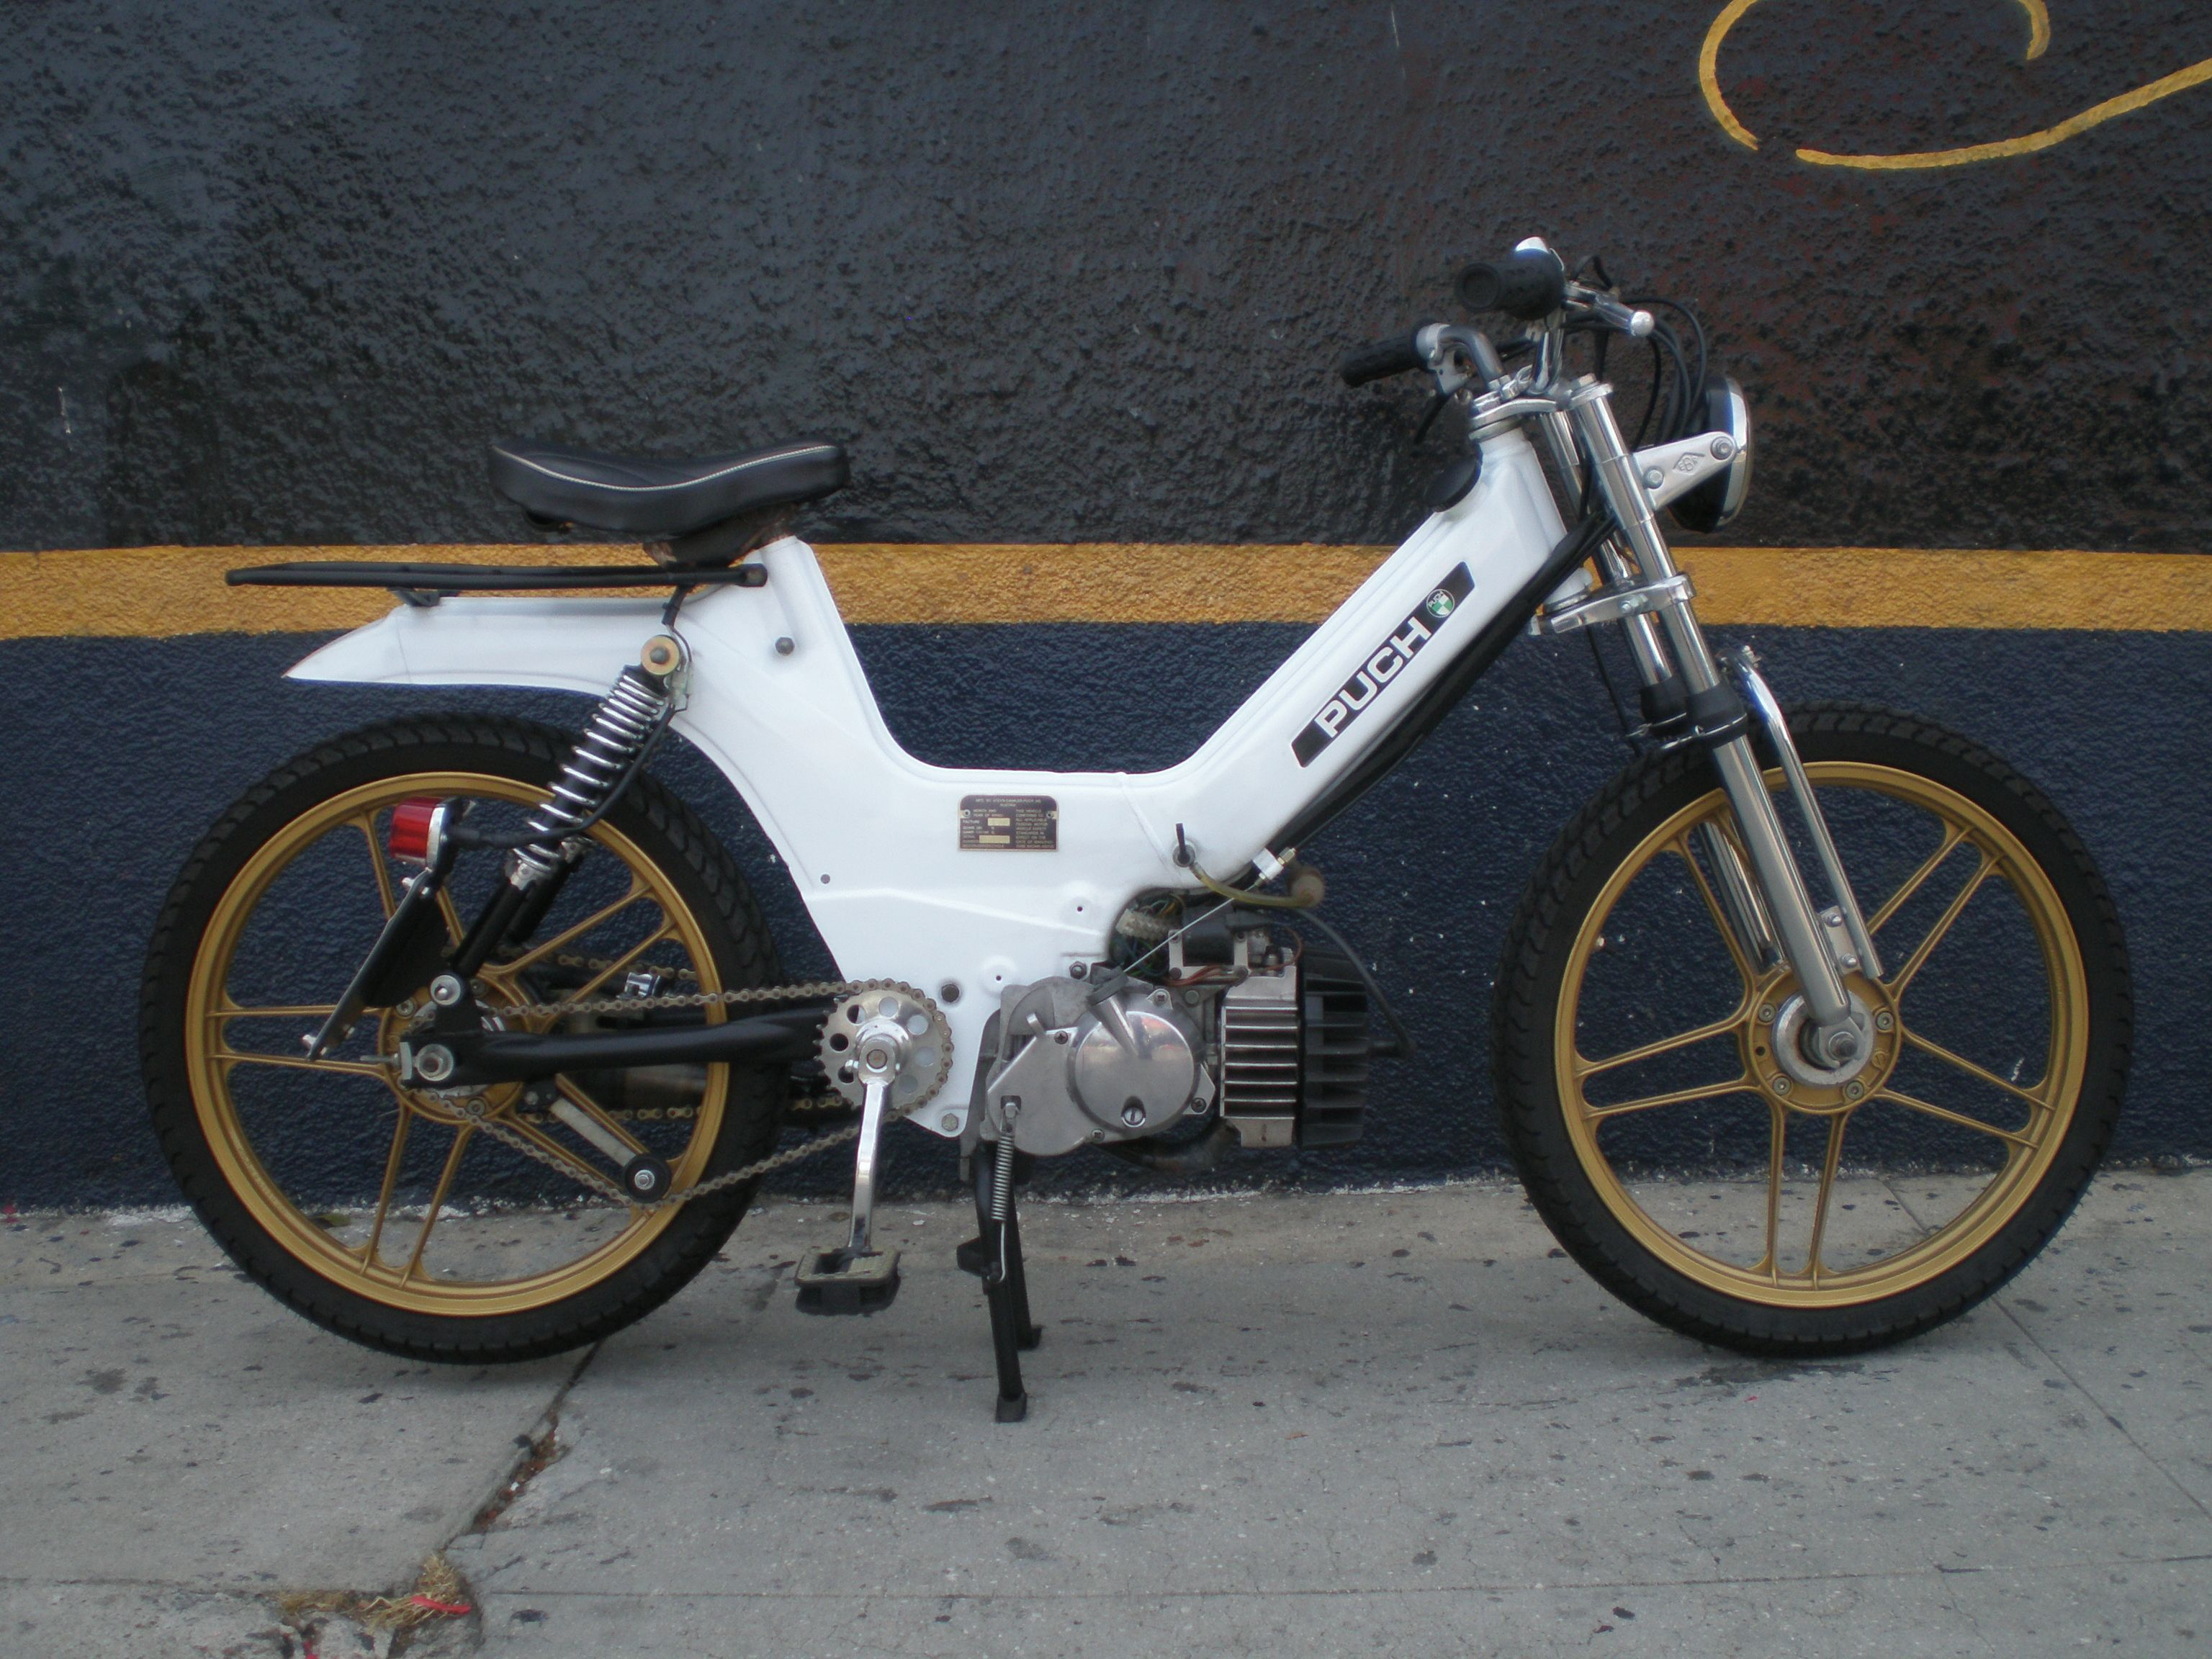 Puch Maxi Mod - I'm not far from this myself